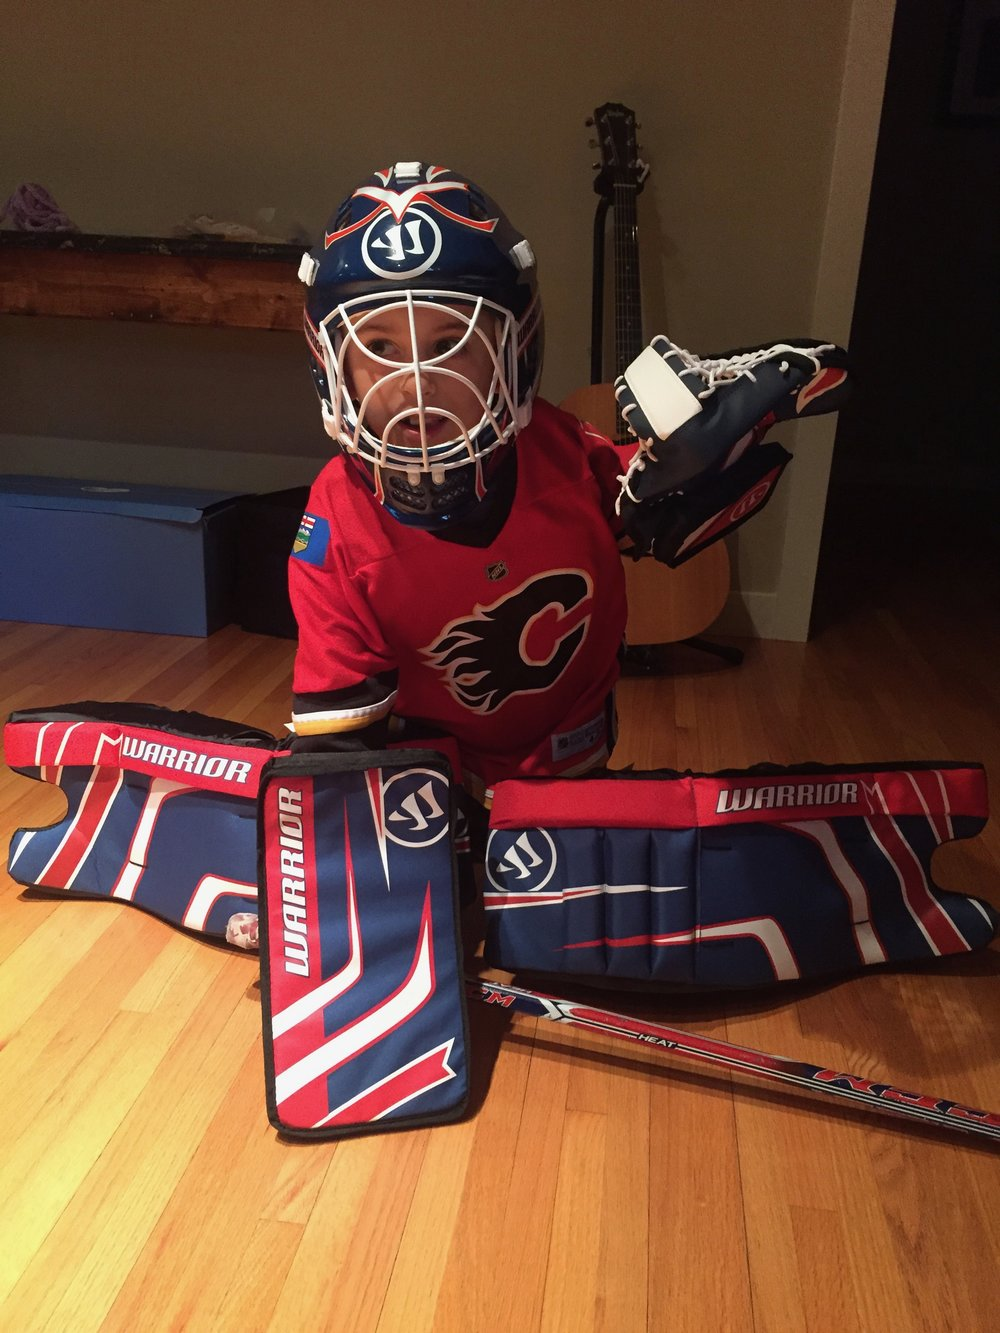 Ben's birthday goalie gear.